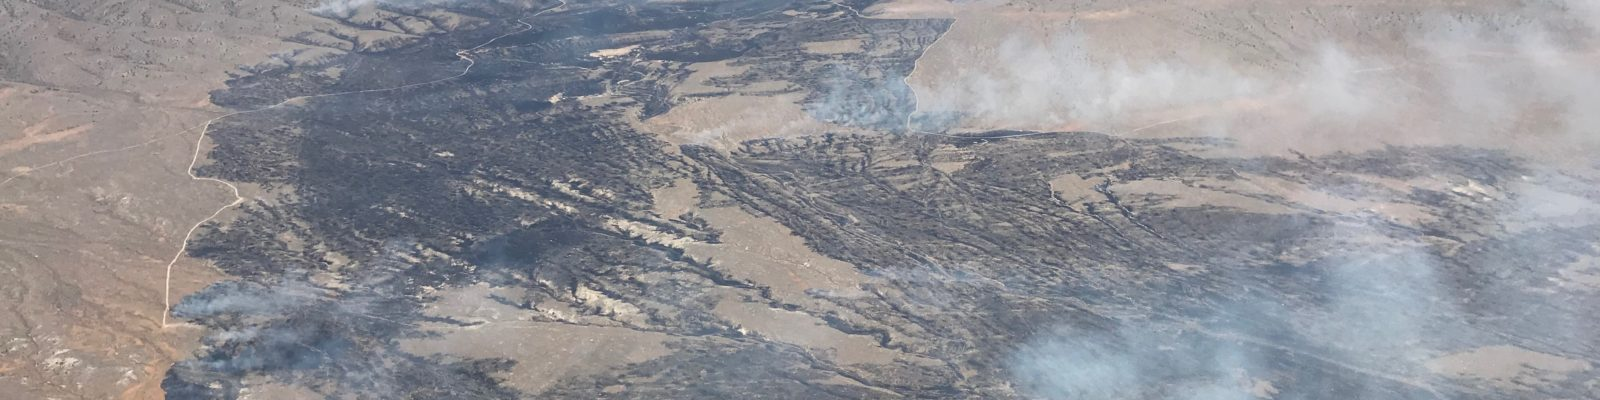 Aerial photo of Shelter Pass Fire